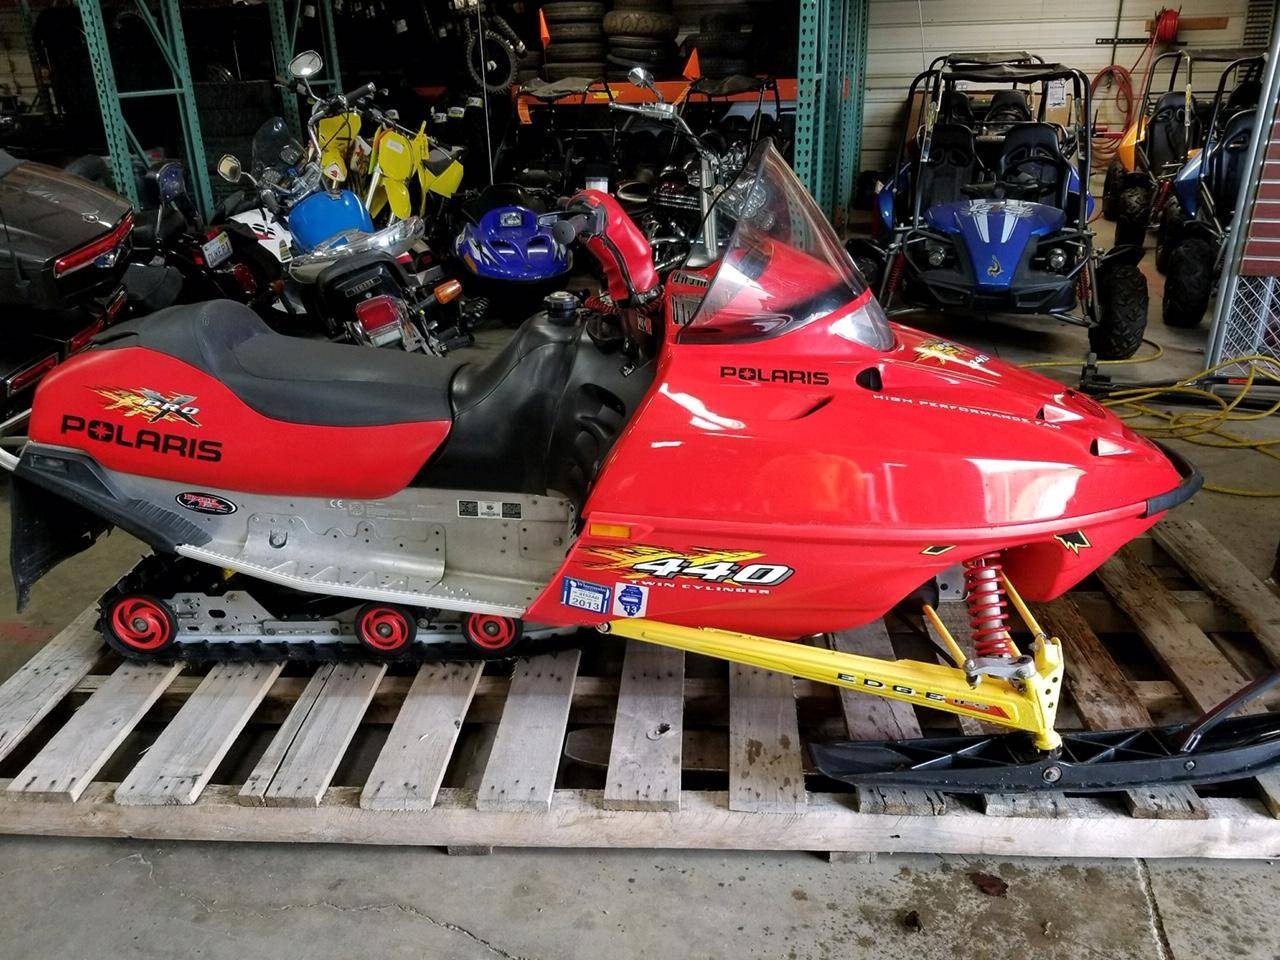 2002 Polaris Indy 440 Pro X in Belvidere, Illinois - Photo 1